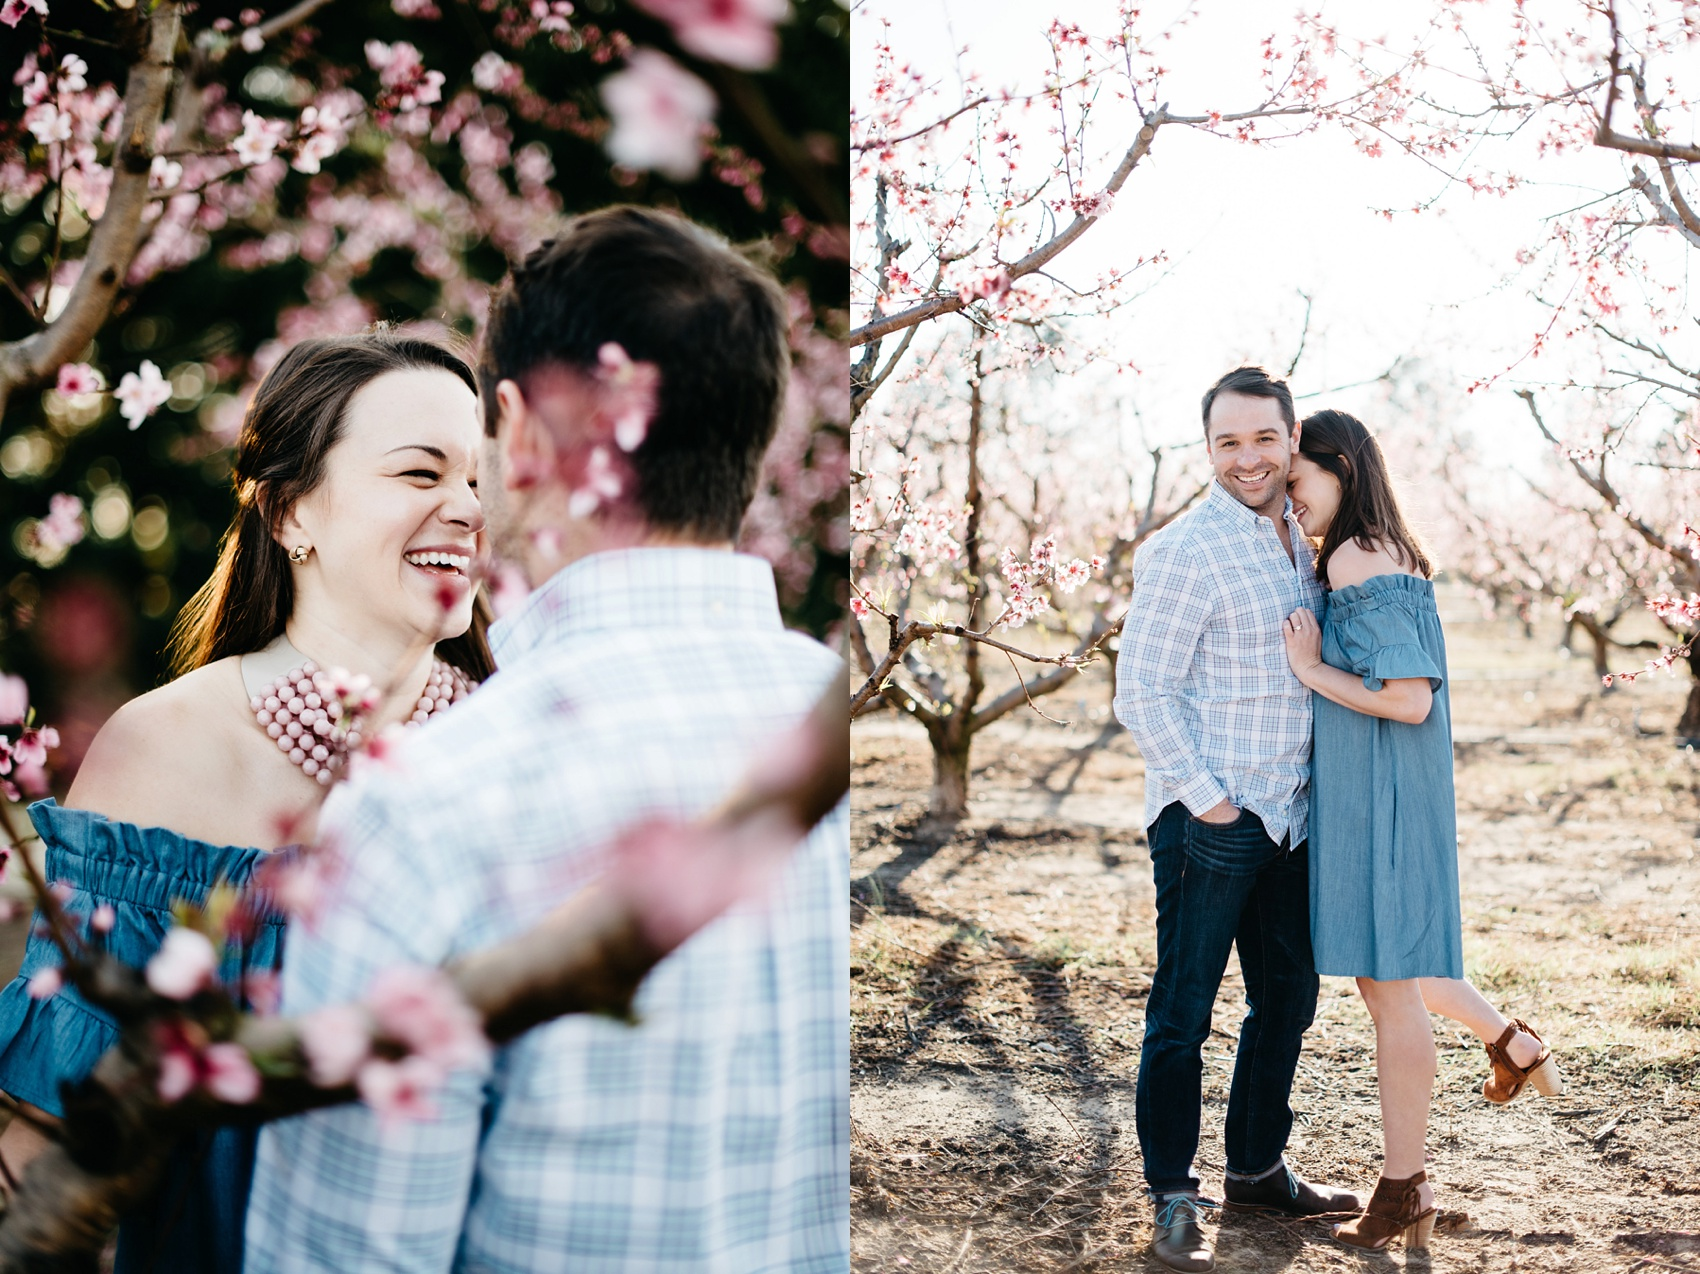 peachtree_engagement_session_1841.jpg